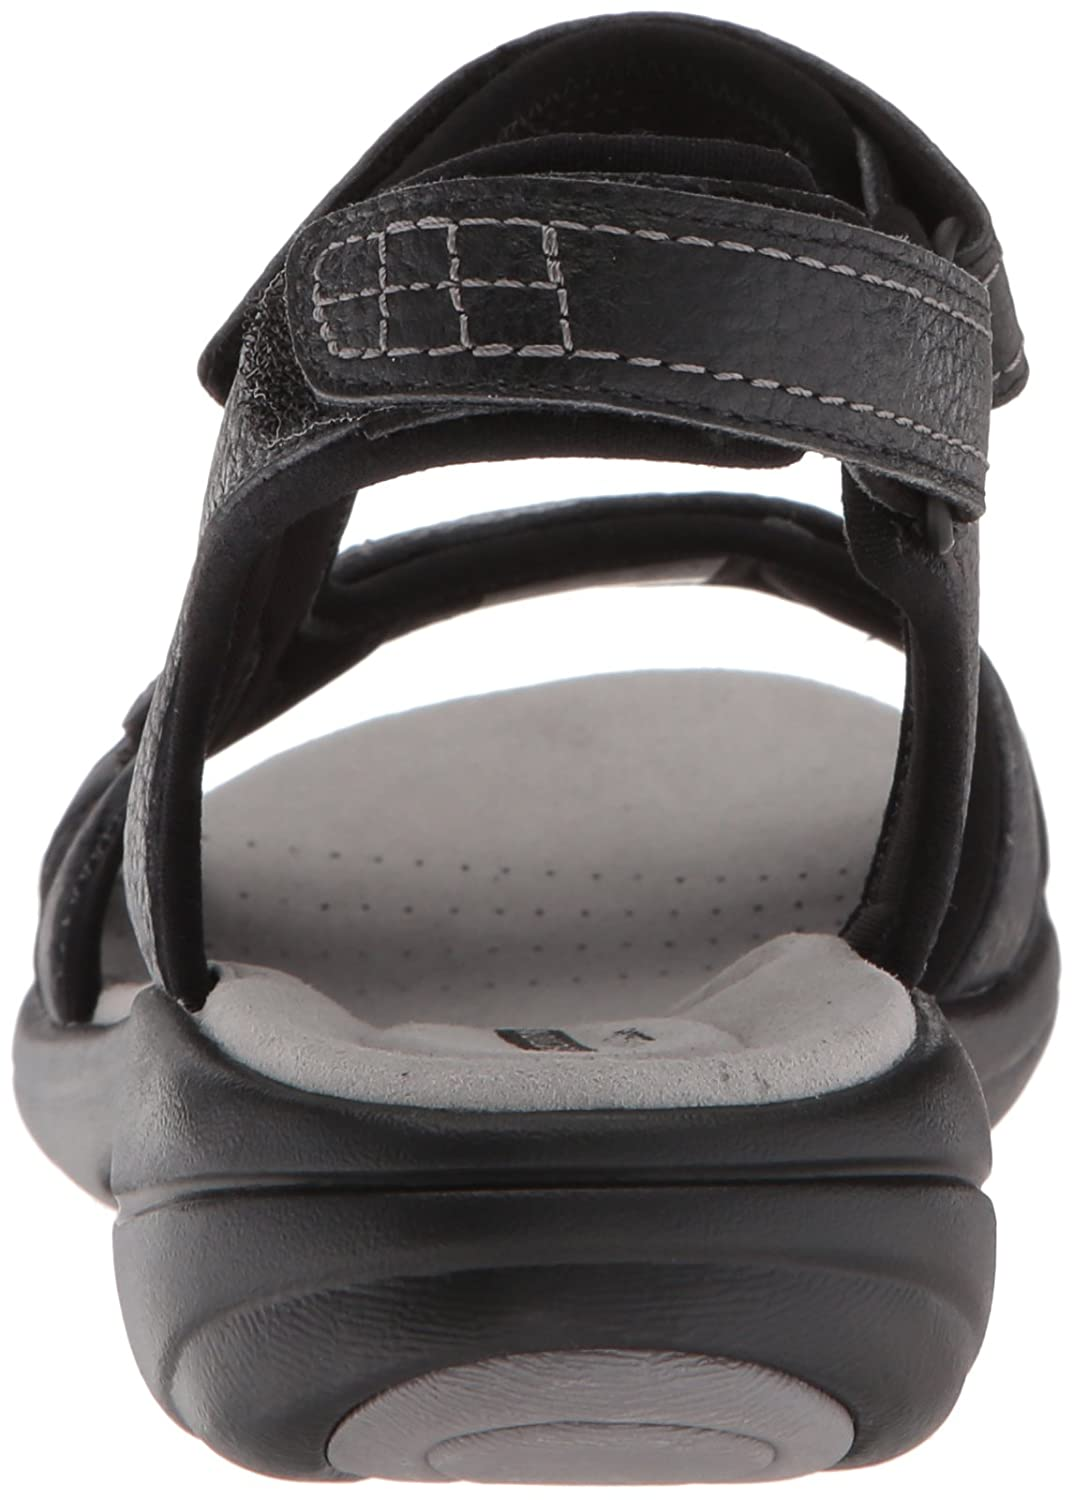 CLARKS Women's Saylie Jade Sandal B074CKC75J 6 W US|Black Tumbled Leather